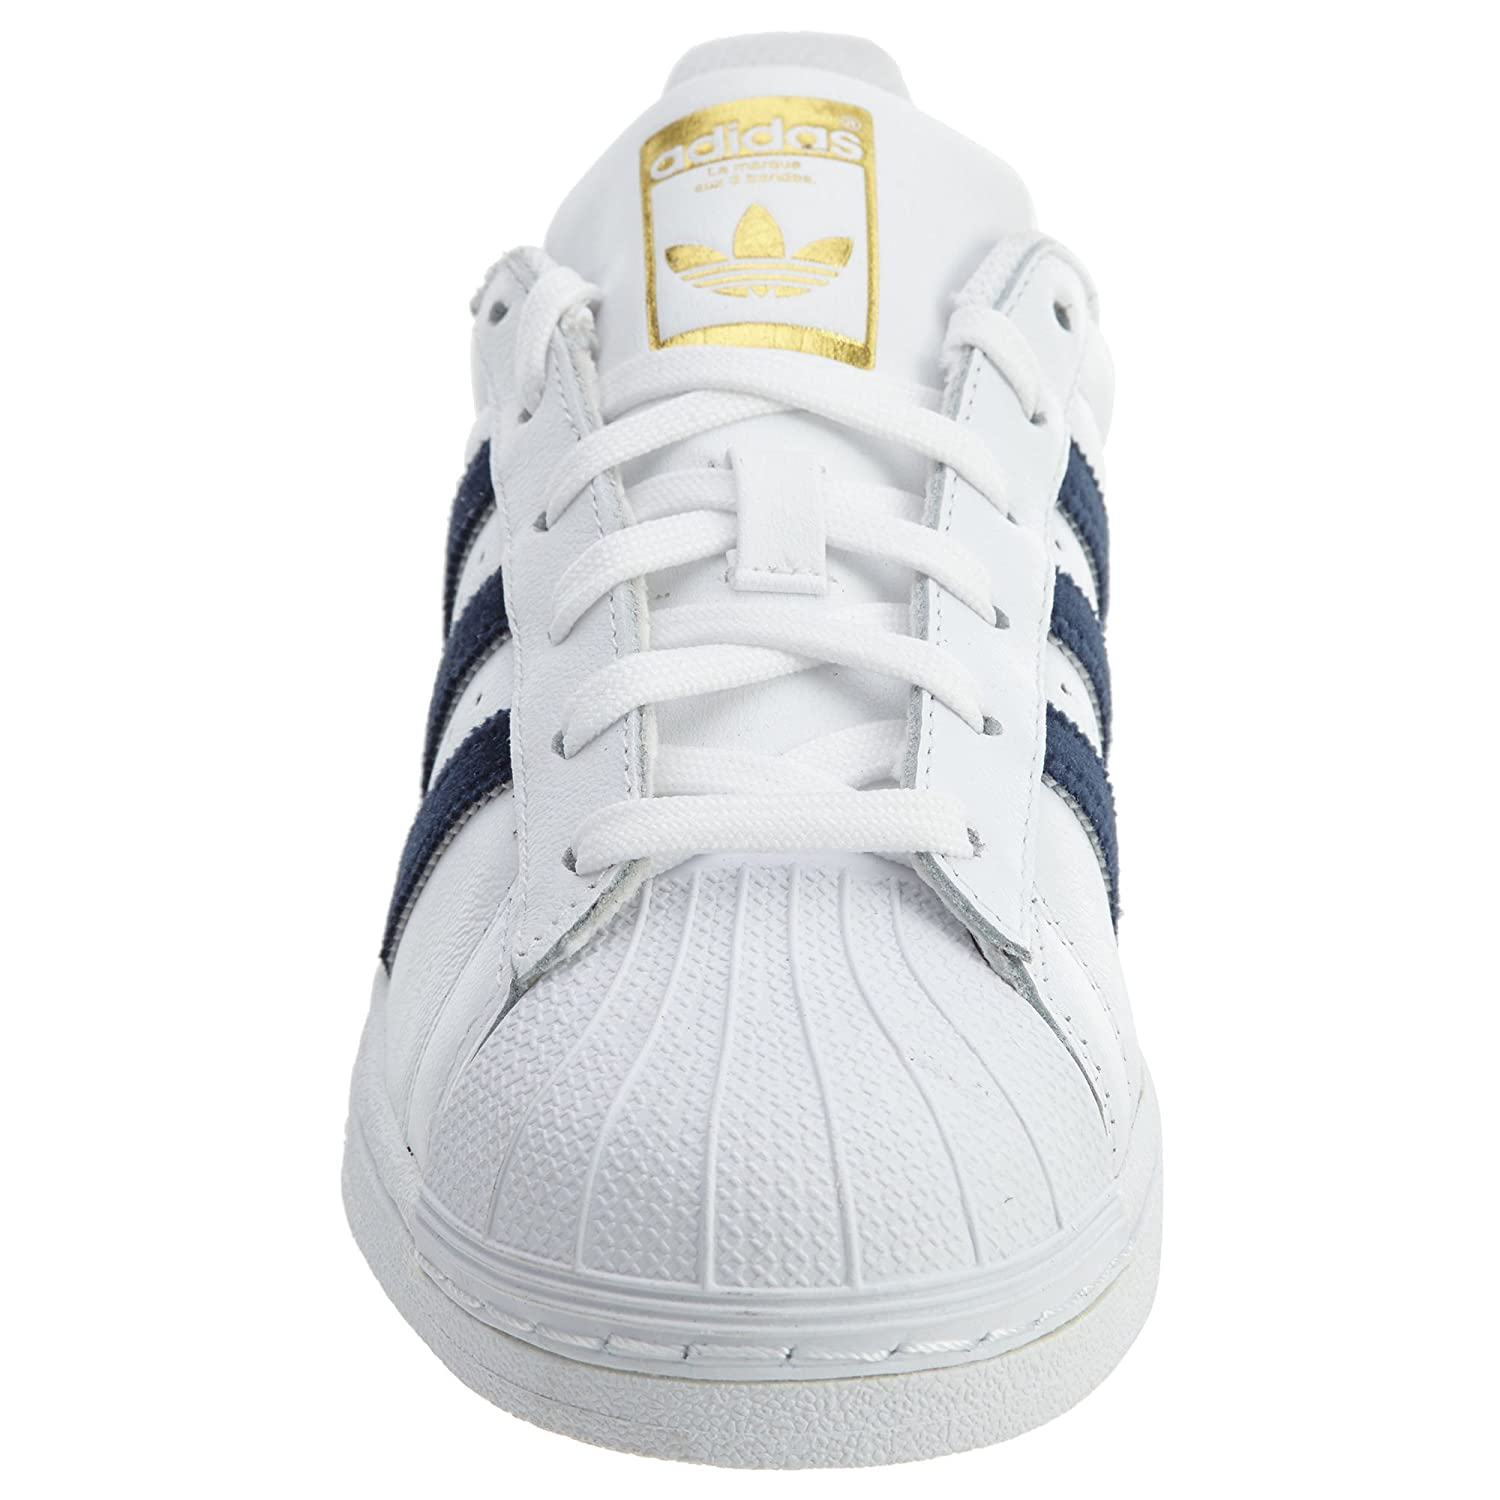 Adidas-Superstar-Women-039-s-Fashion-Casual-Sneakers-Athletic-Shoes-Originals thumbnail 29